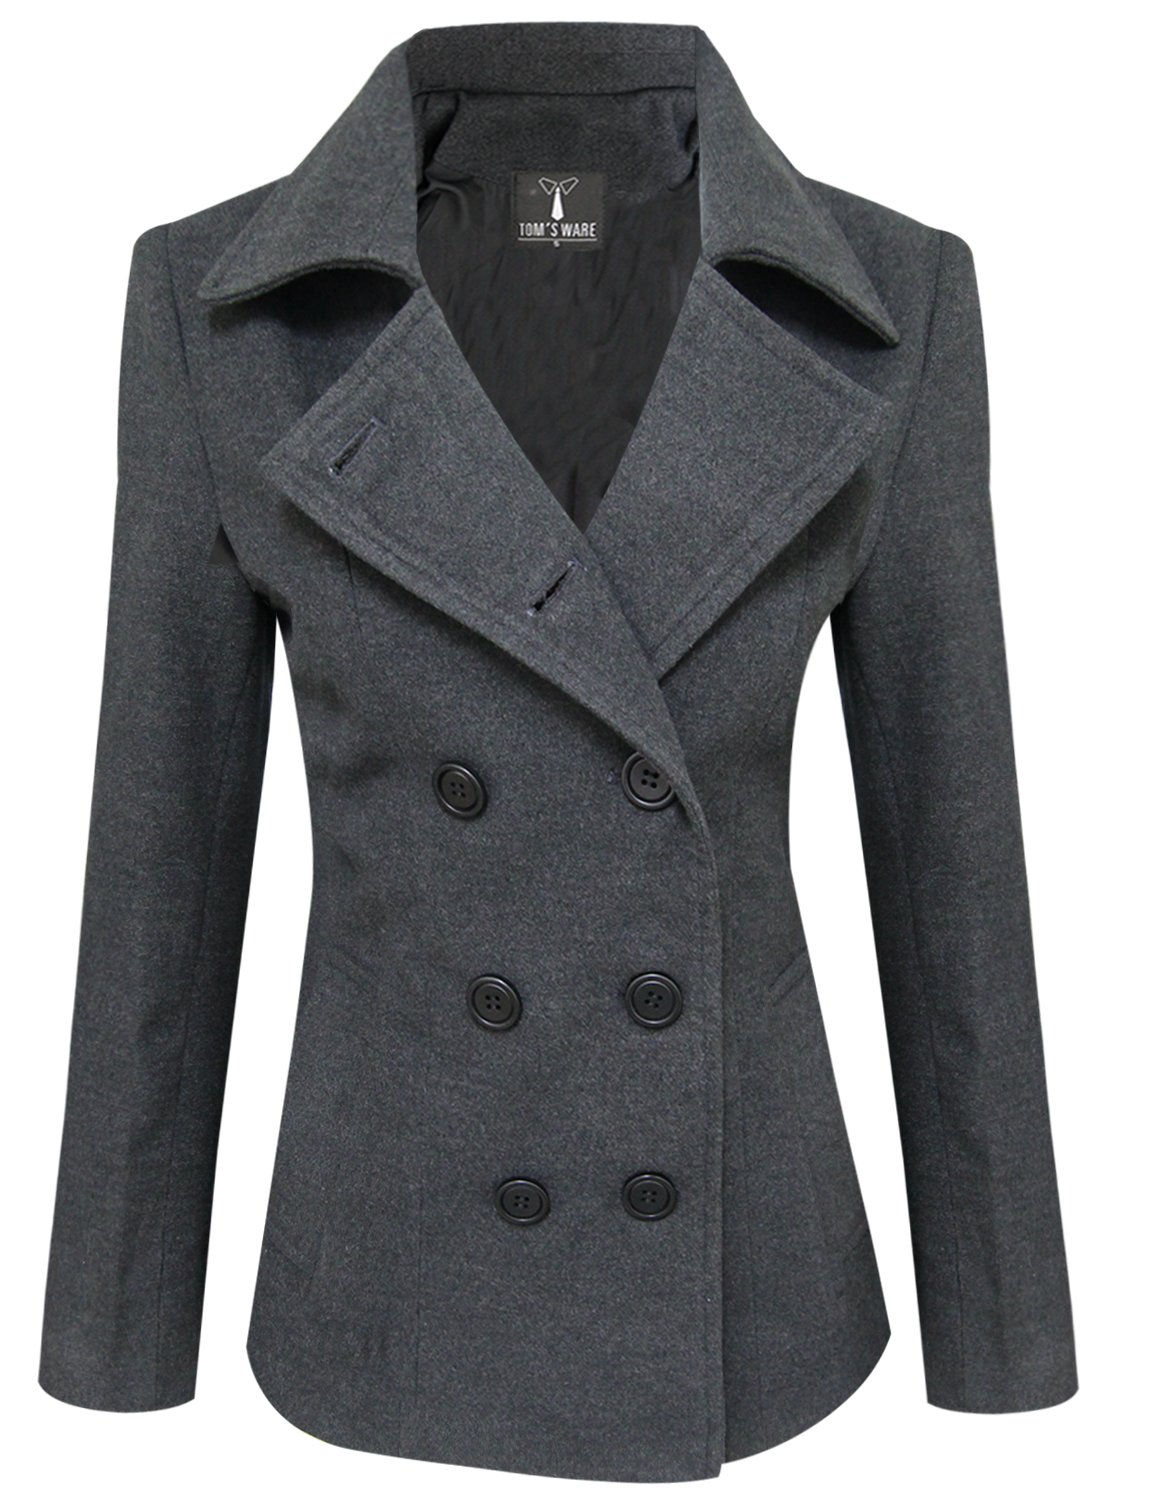 Tom's Ware Womens Trendy Double Breasted Wool Pea Coat TWCWC06-CHARCOAL-L